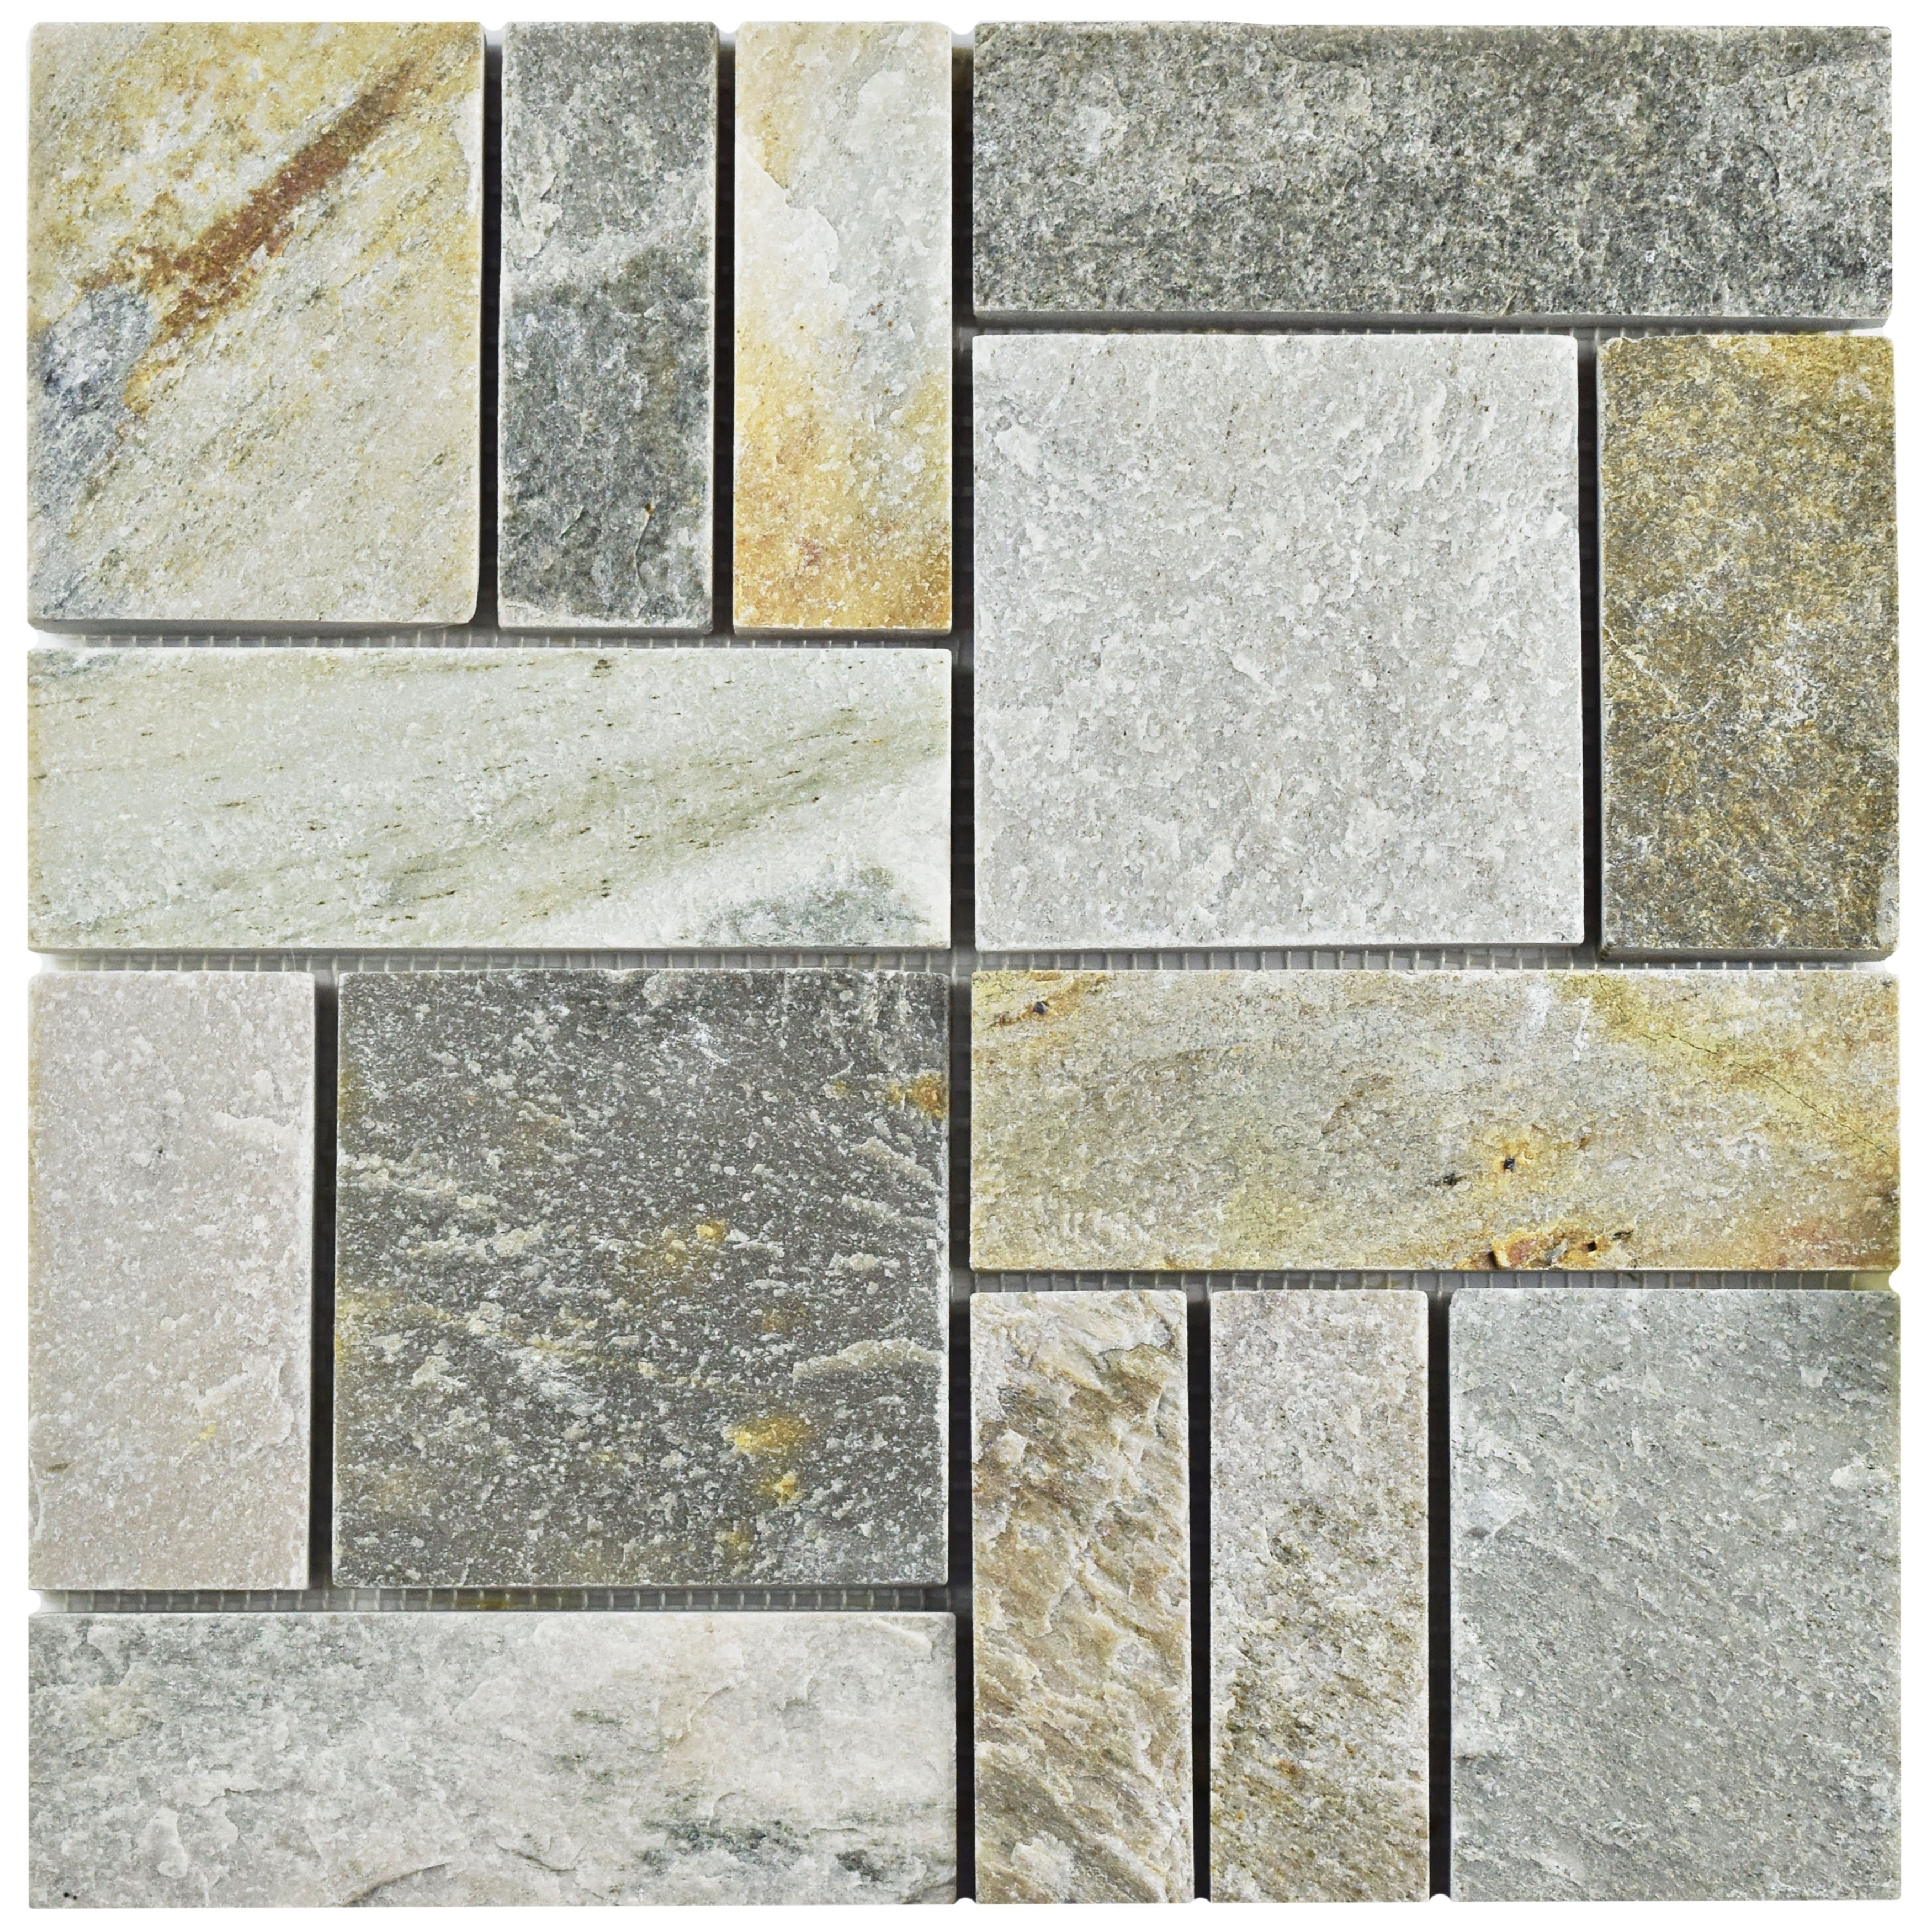 """Somertile SCRPTQA Cliff Patchwork Arizona Quartzite Natural Stone Mosaic Floor and Wall Tile, 12"""" x 12"""", Grey/Brown/Be"""